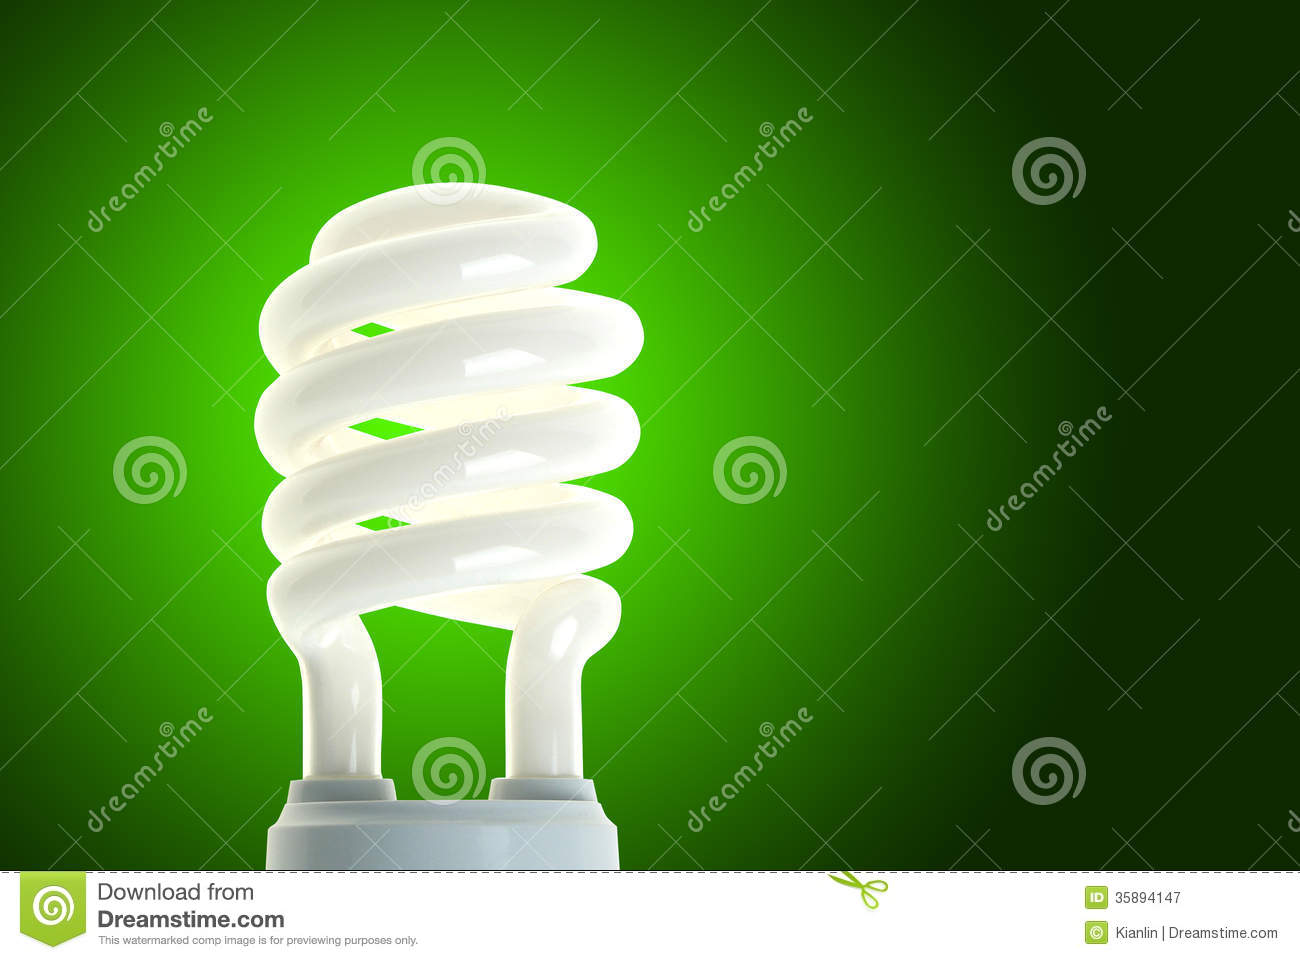 How to Choose an Energy-Saving Bulb (Compact Fluorescent)?